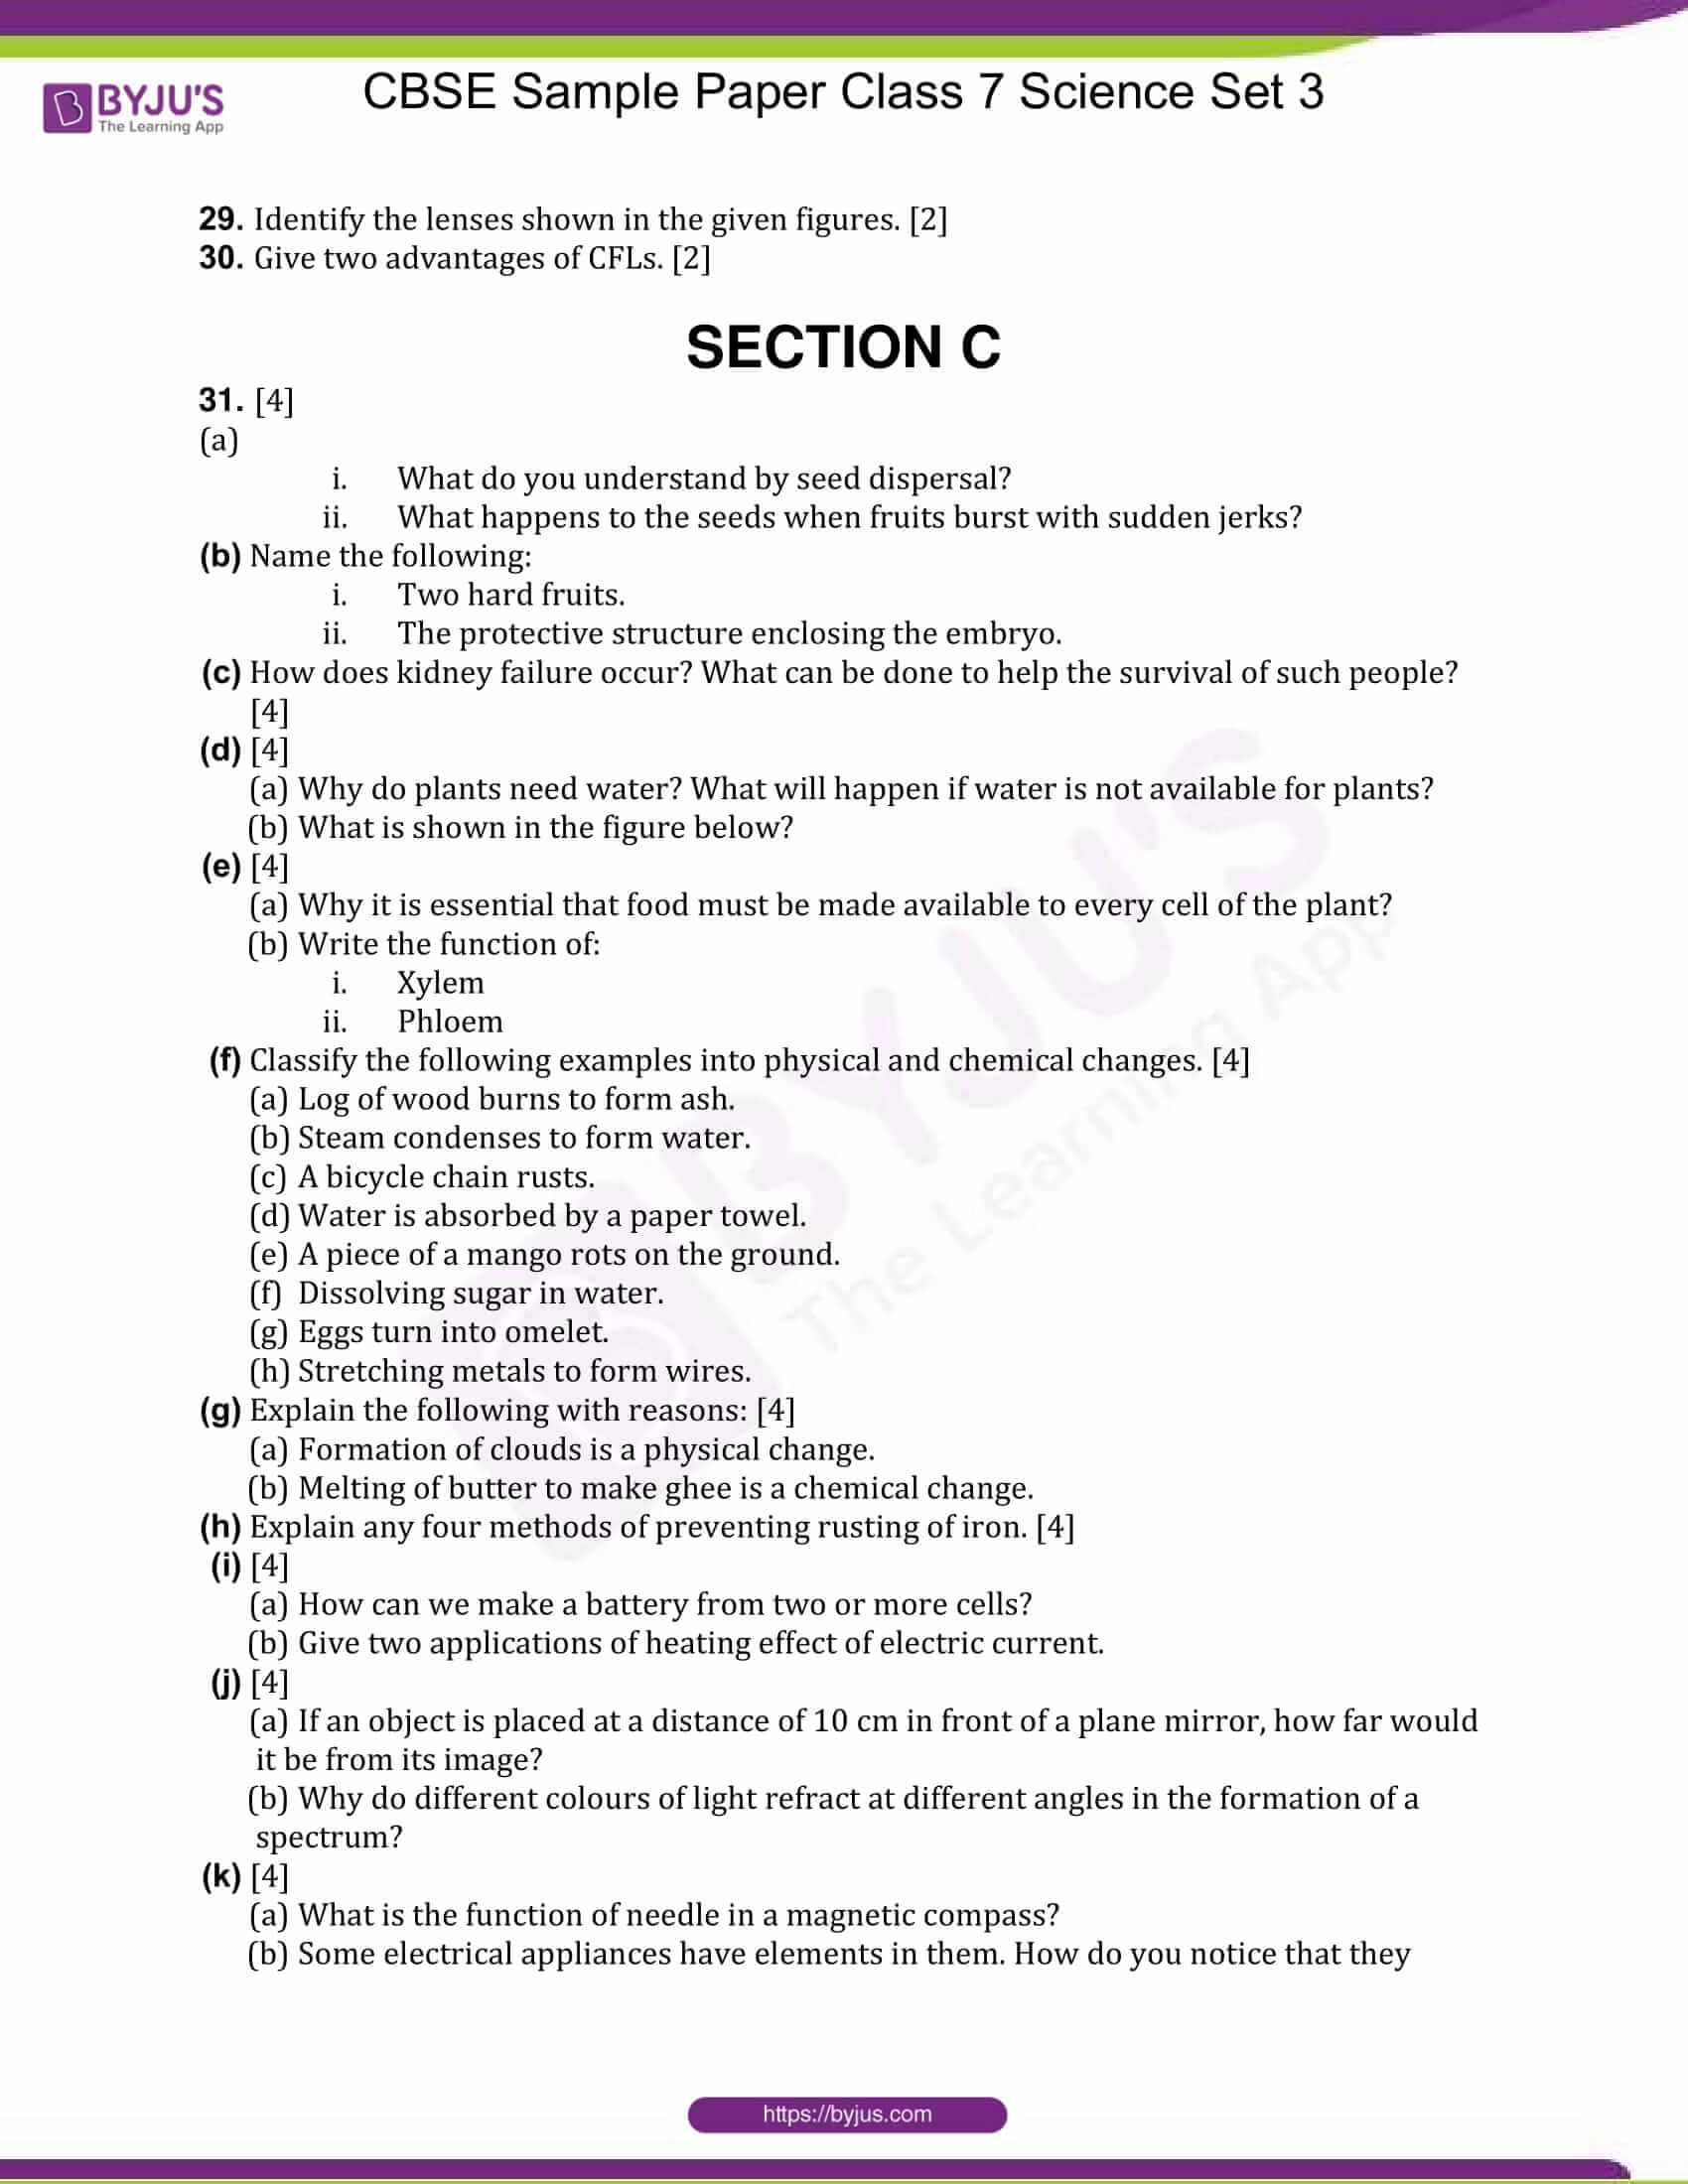 cbse sample paper class 7 science set 3